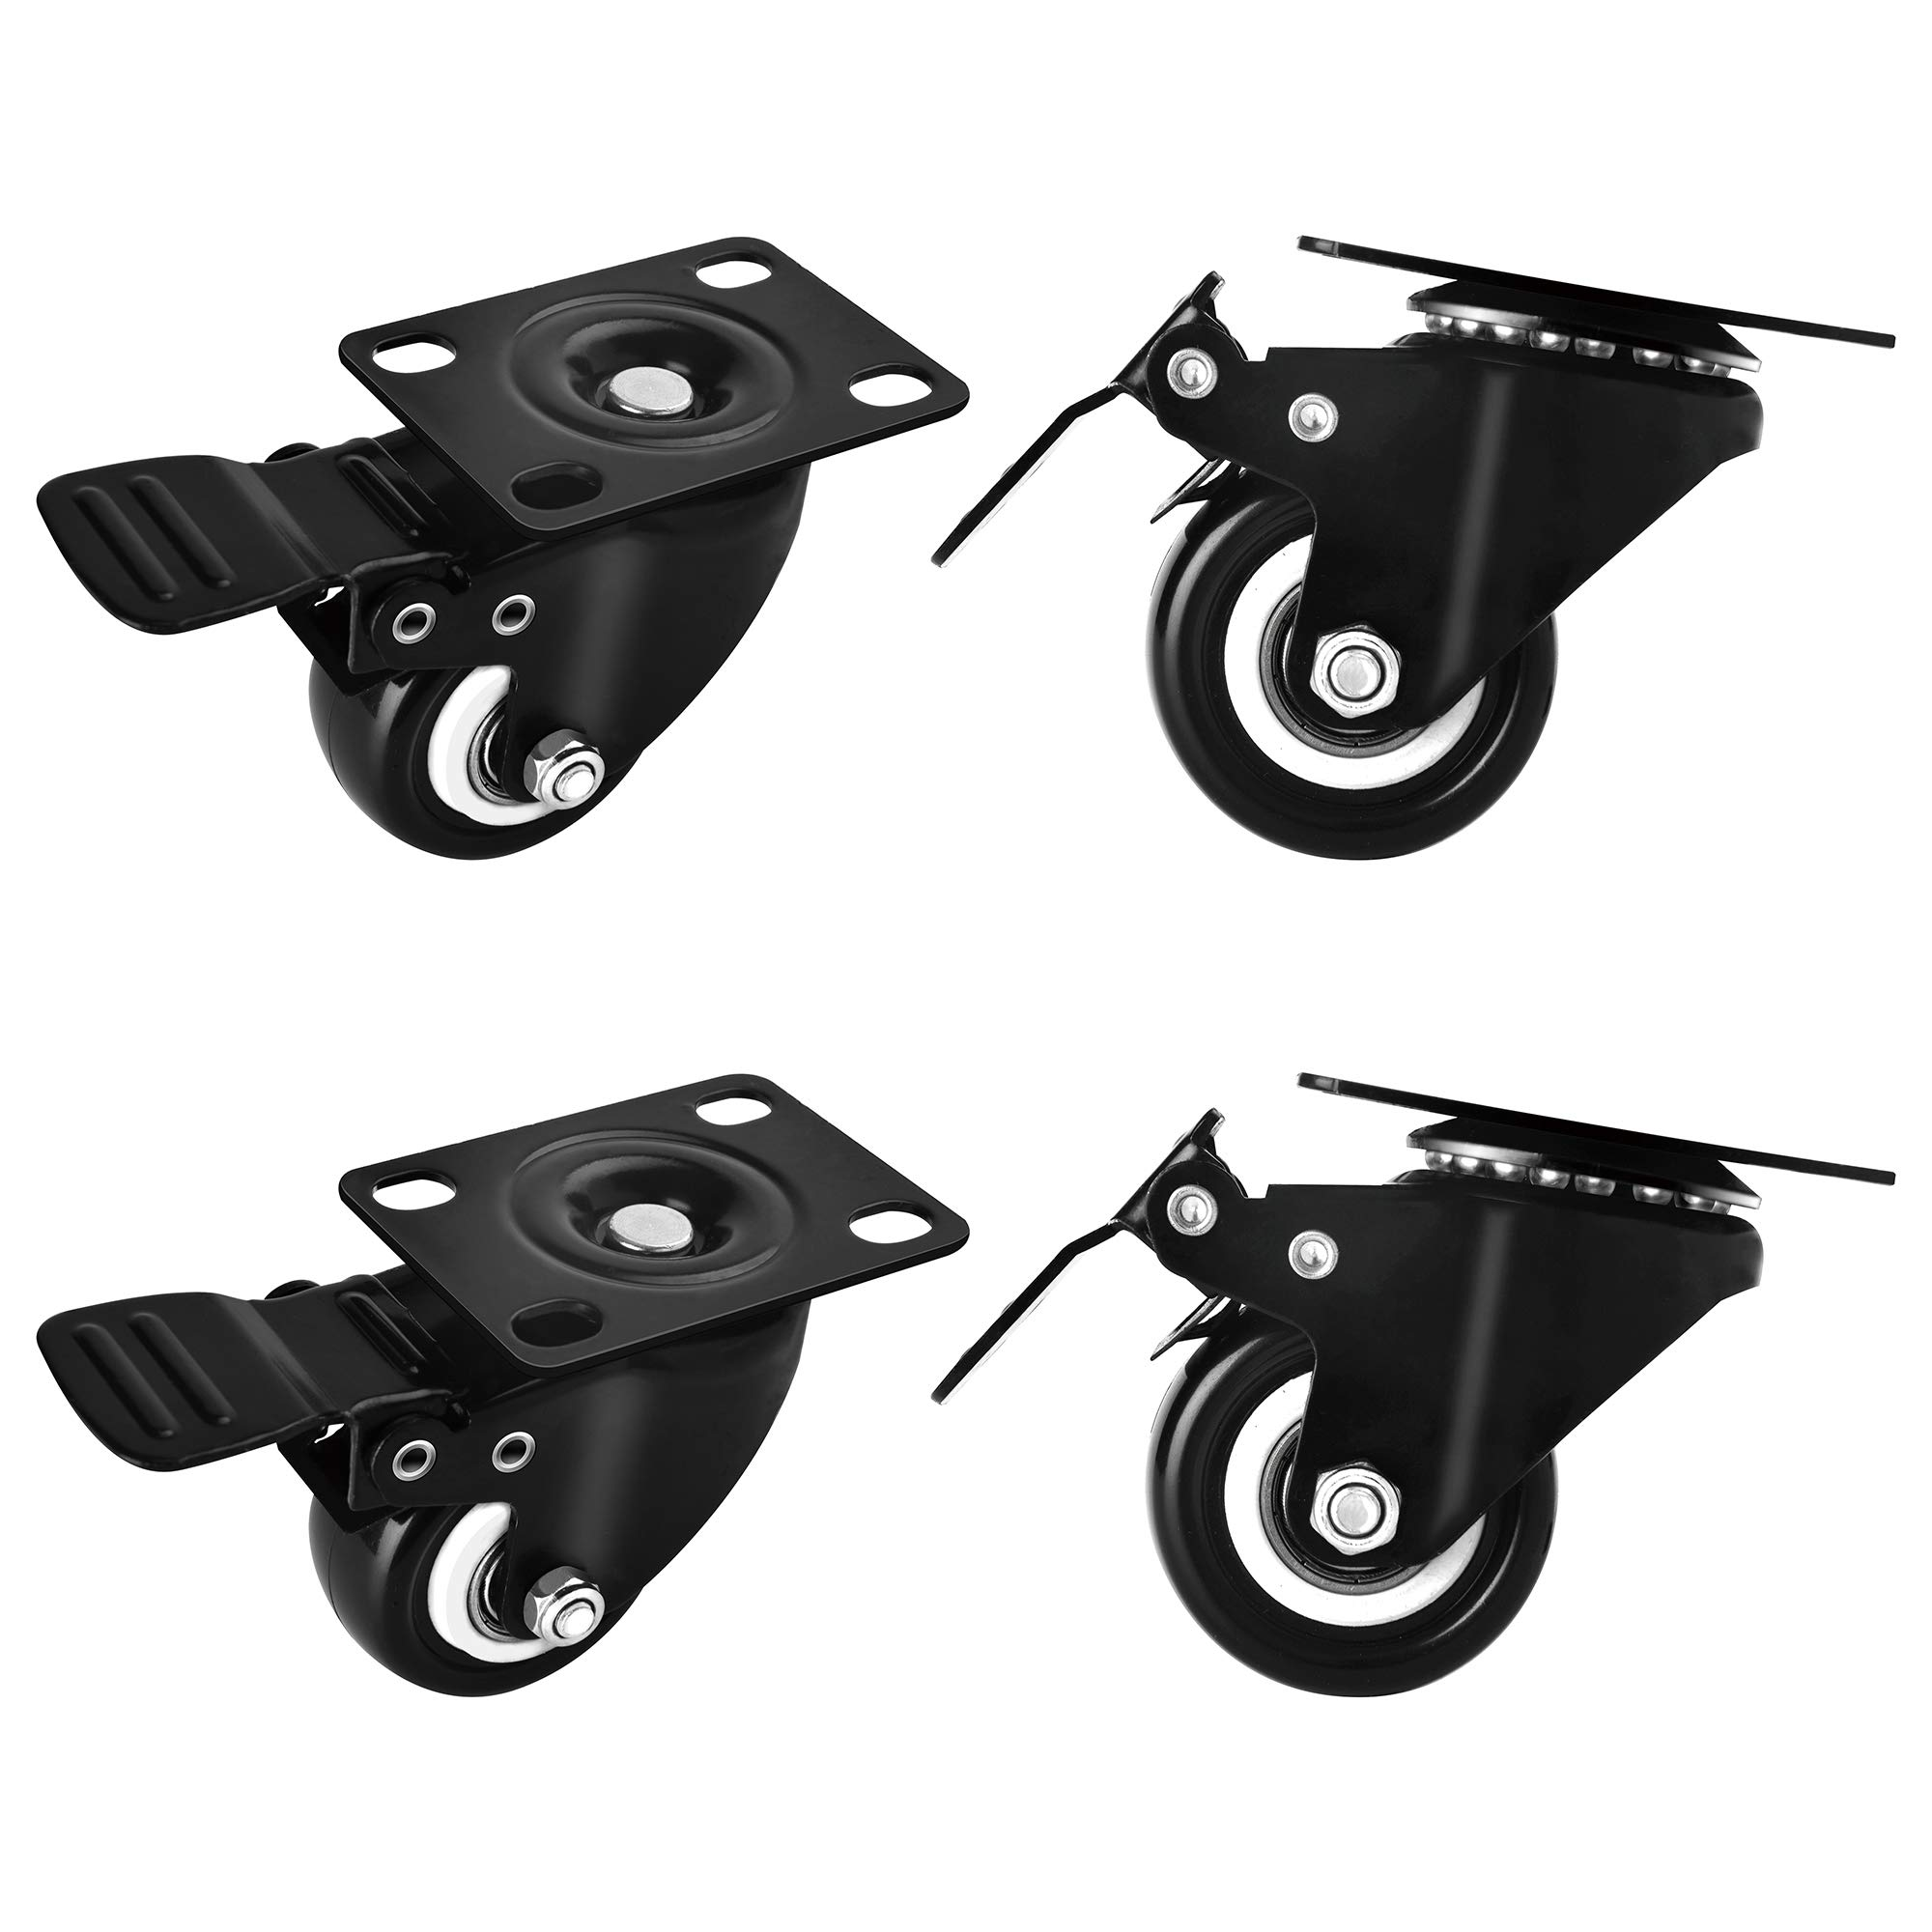 Moogiitools 2'' Swivel Rubber Caster wheels with Safety Dual Locking Heavy Duty 600lbs Set of 4 with Brake